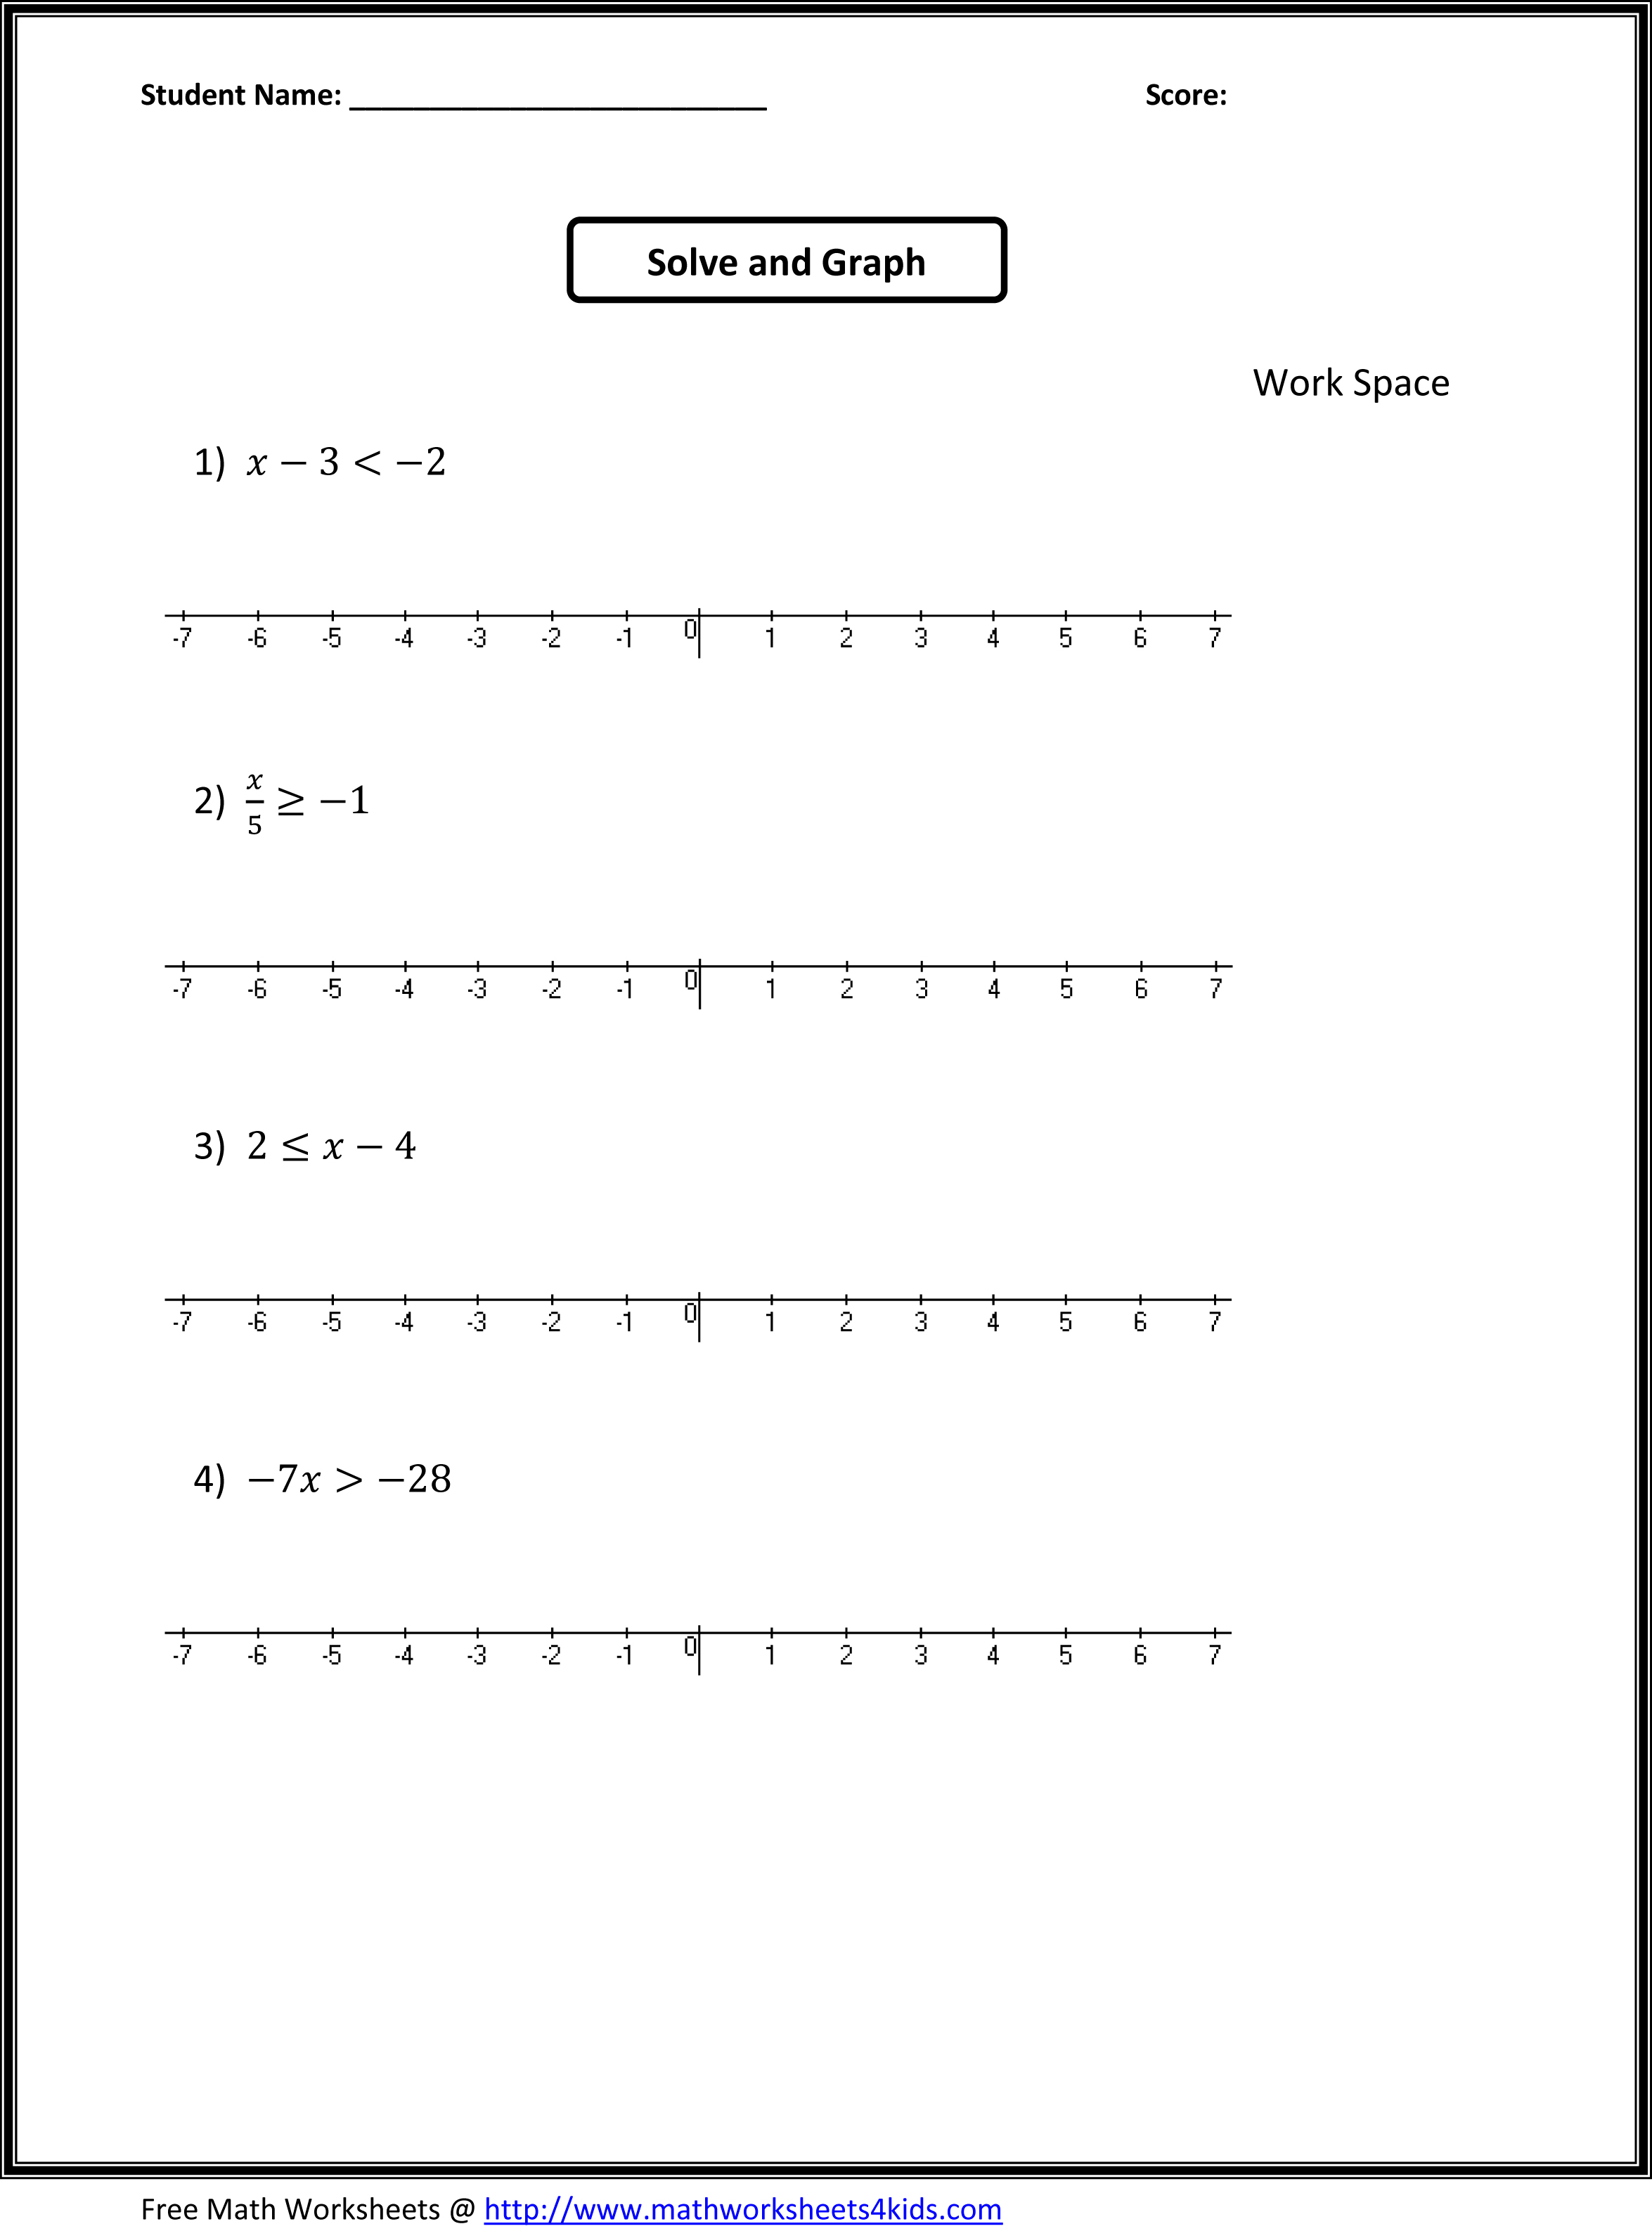 Math 7 Worksheets Grade 7 Math Worksheets And Problems Integers – Free Math Worksheets Grade 7